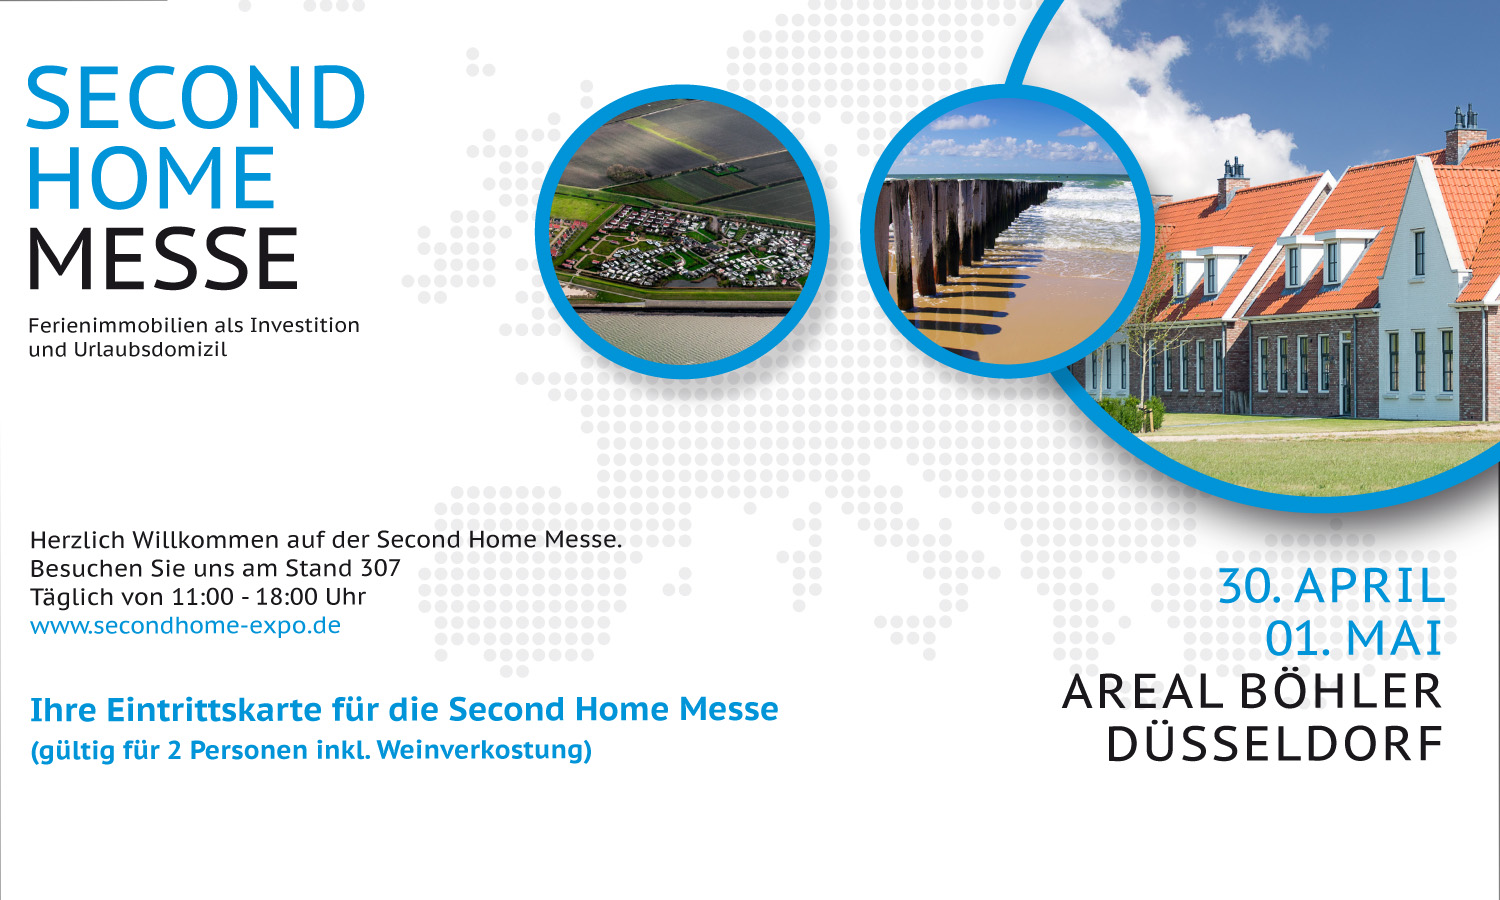 On 30 April and 1 May, the Second Home Trade Fair will be held in Dusseldorf. The Porta Mondial Group will, of course, be there.